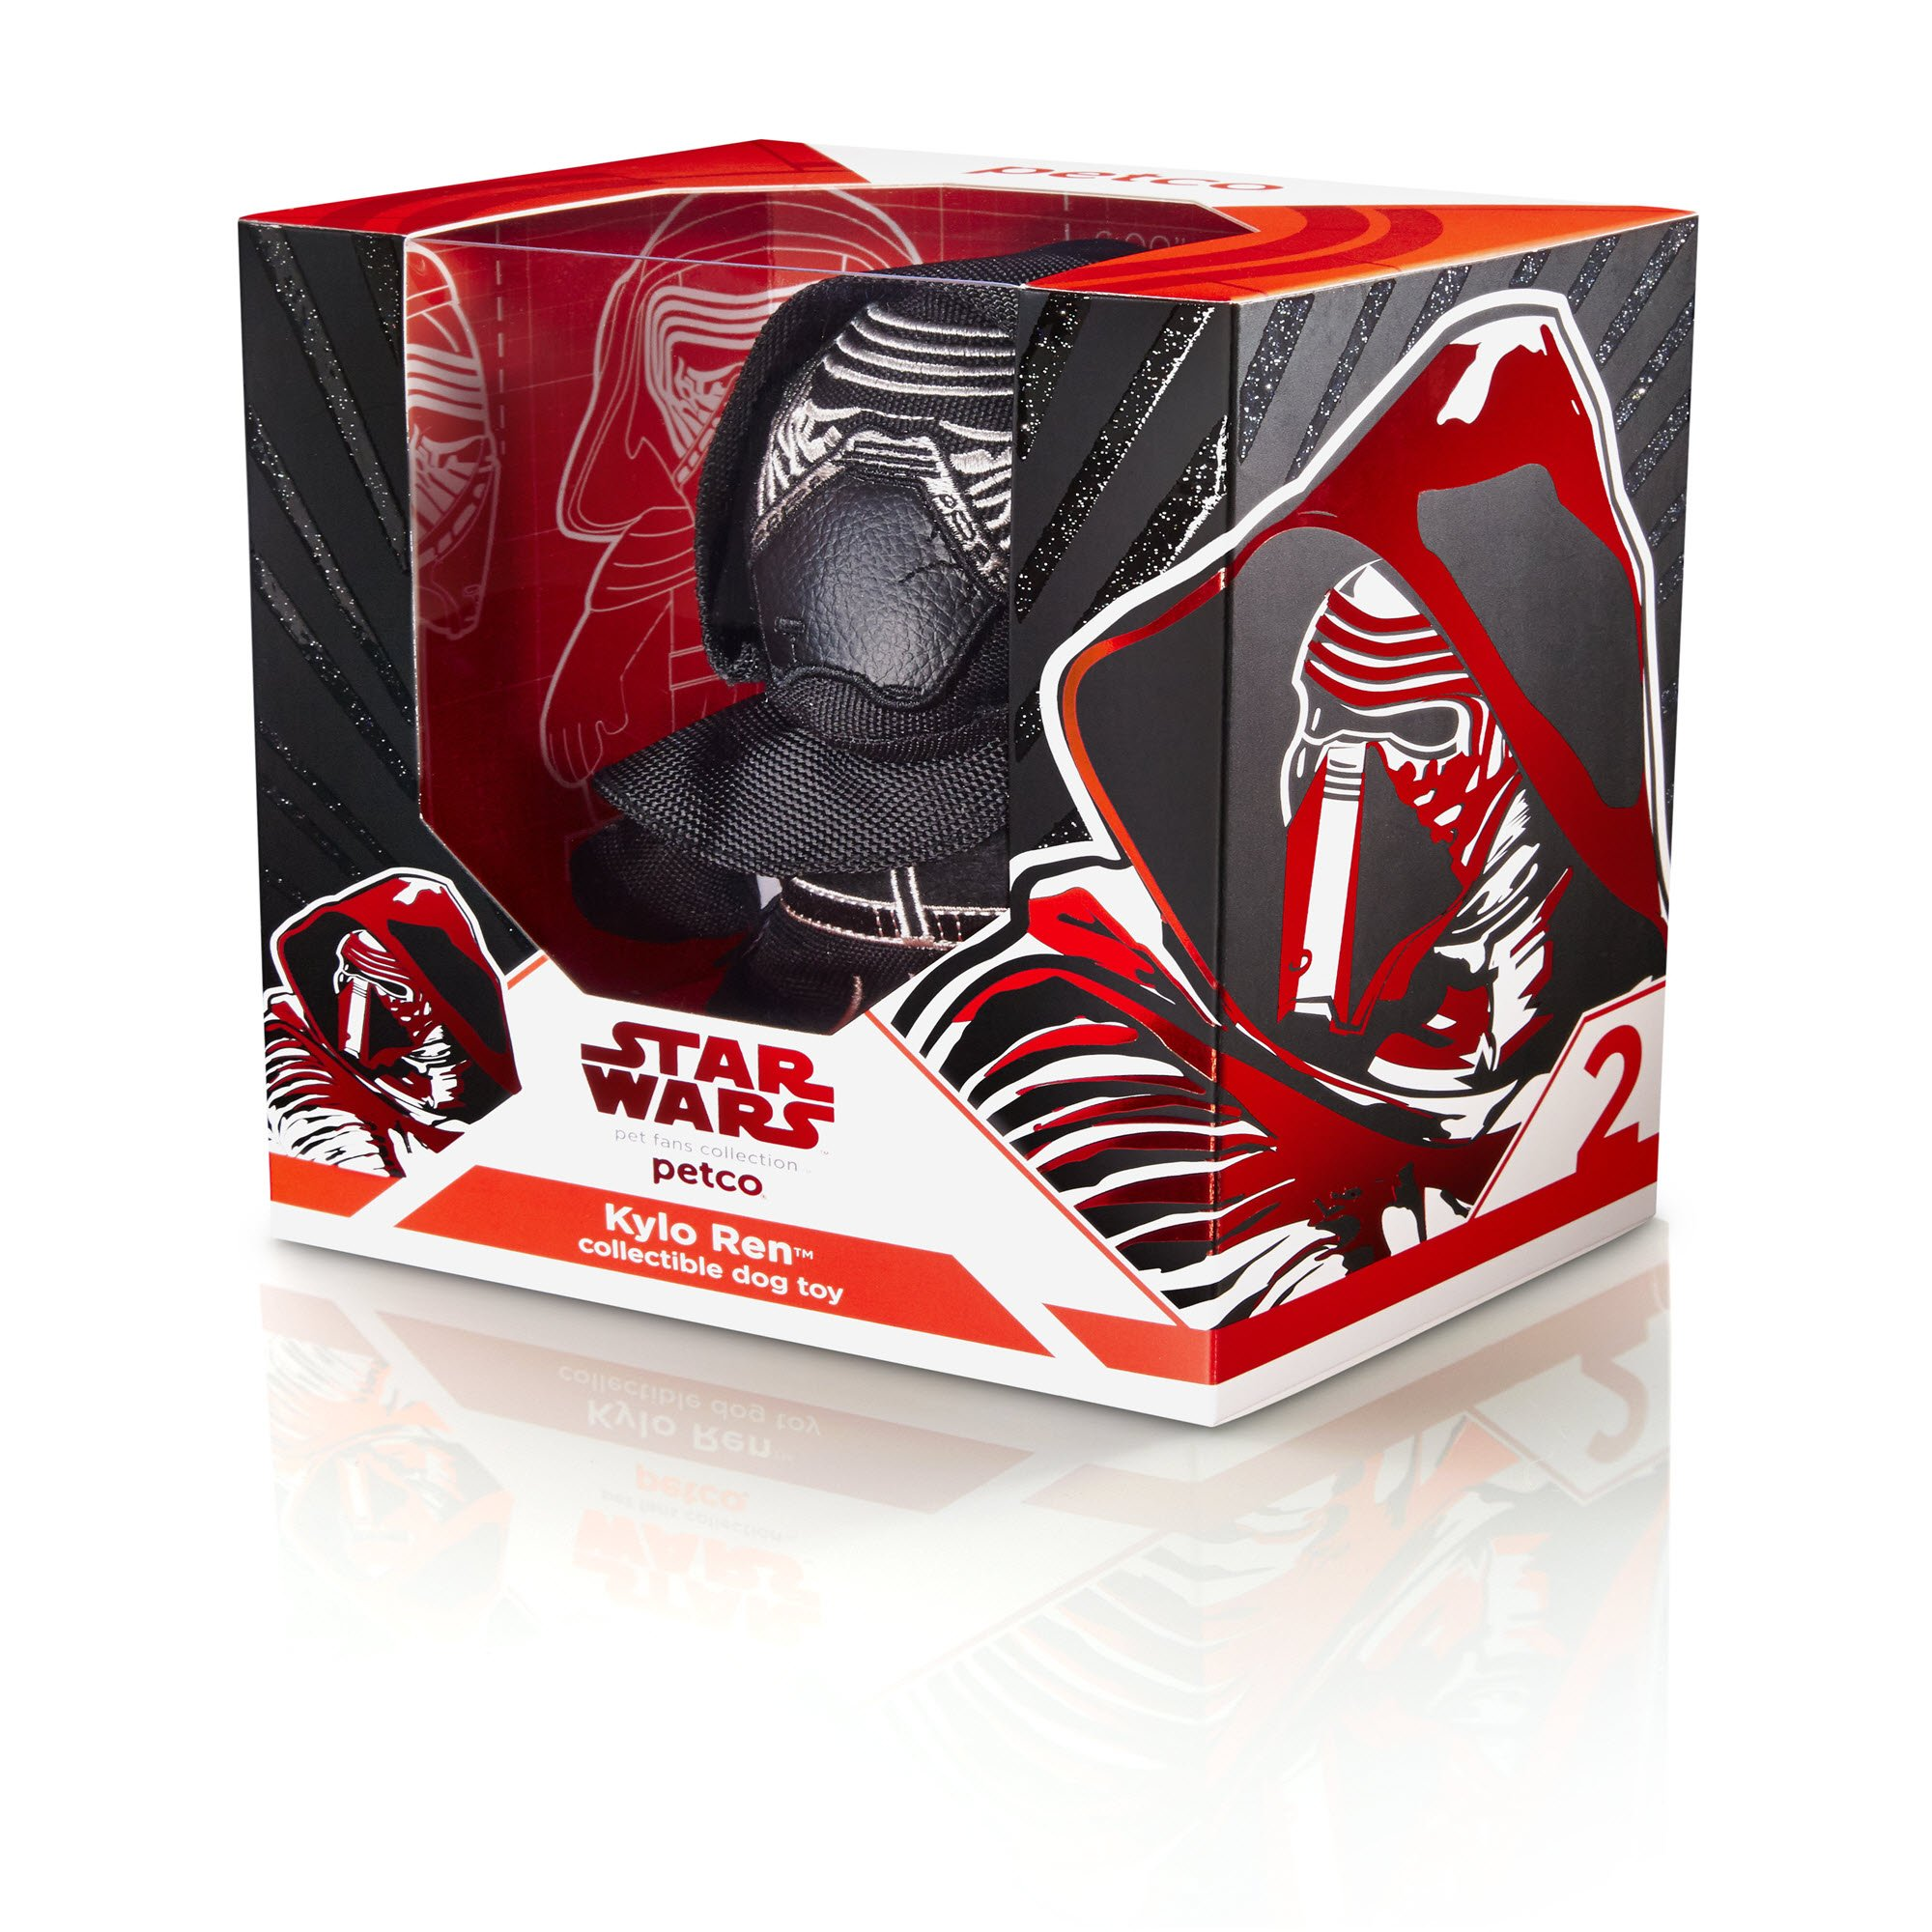 Star Wars Kylo Ren Collectible Toy